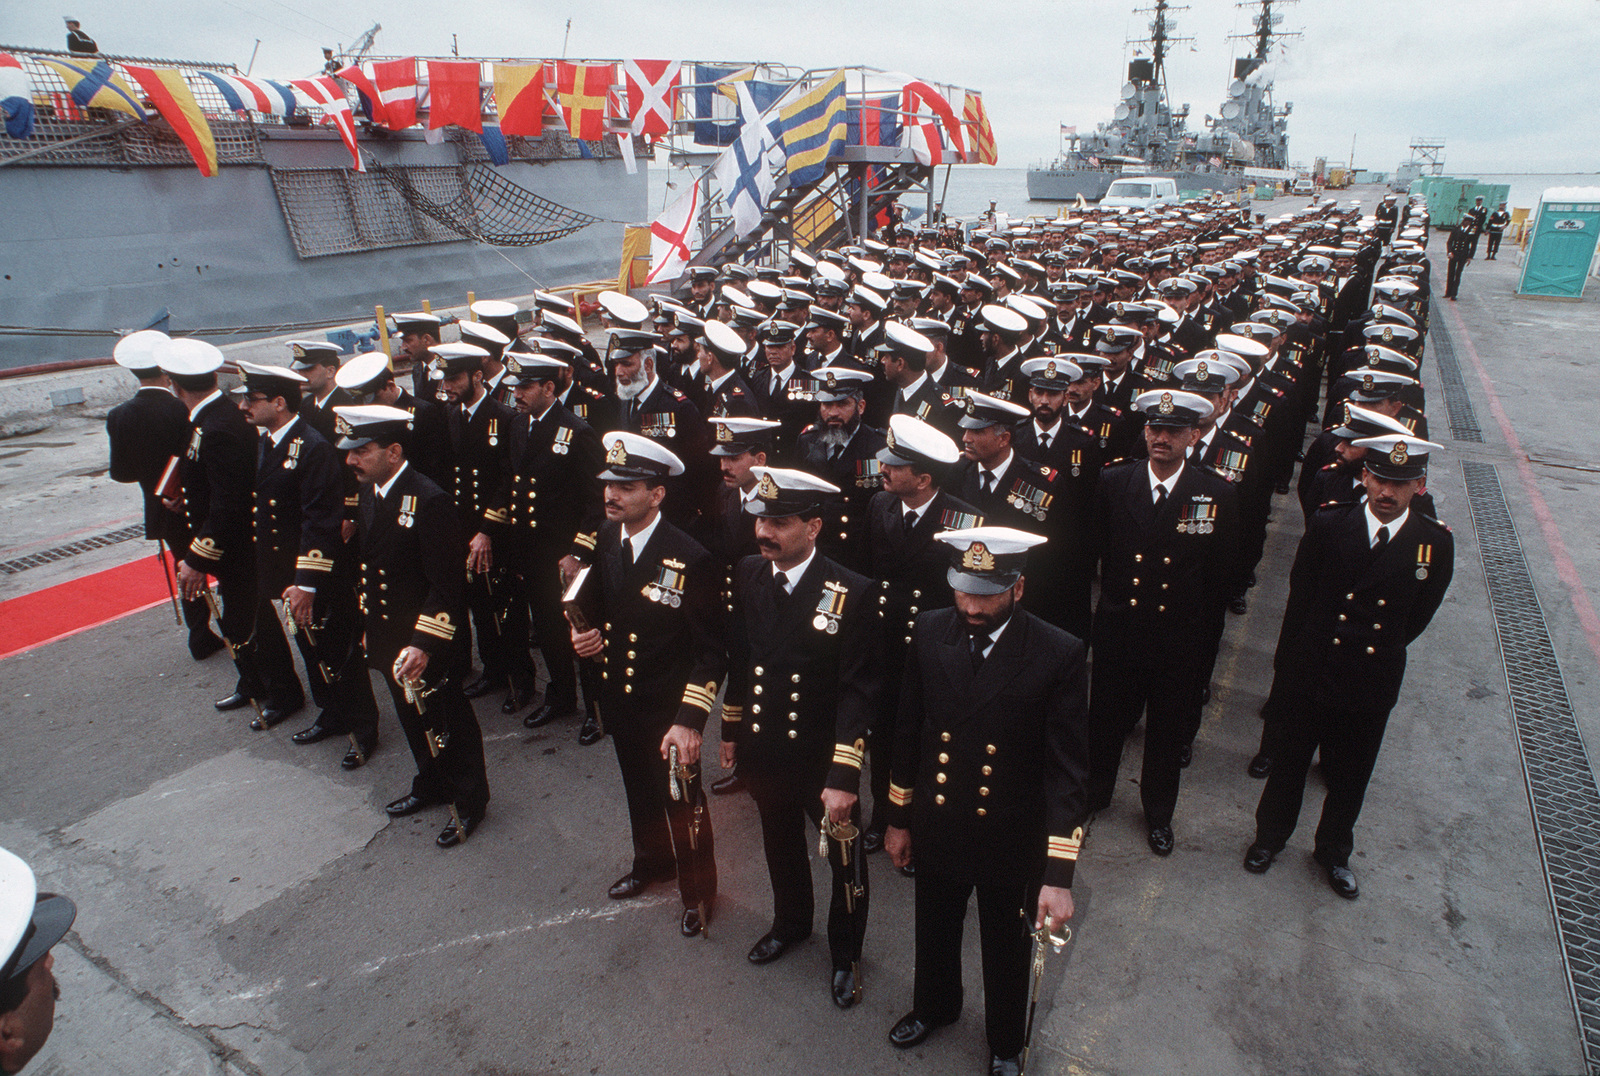 Pakistani officers and crewmen stand in formation during the commissioning ceremony of the former Guided Missile Frigate USS BROOKE (FFG 1) and the former frigate USS O'CALLAHAN (FF 1051) are transferred to the Pakistani navy.  The BROOKE is being commissioned PNS KHAIBAR (D 163) while the O'CALLAHAN becomes PNS ASLAT (F 265)